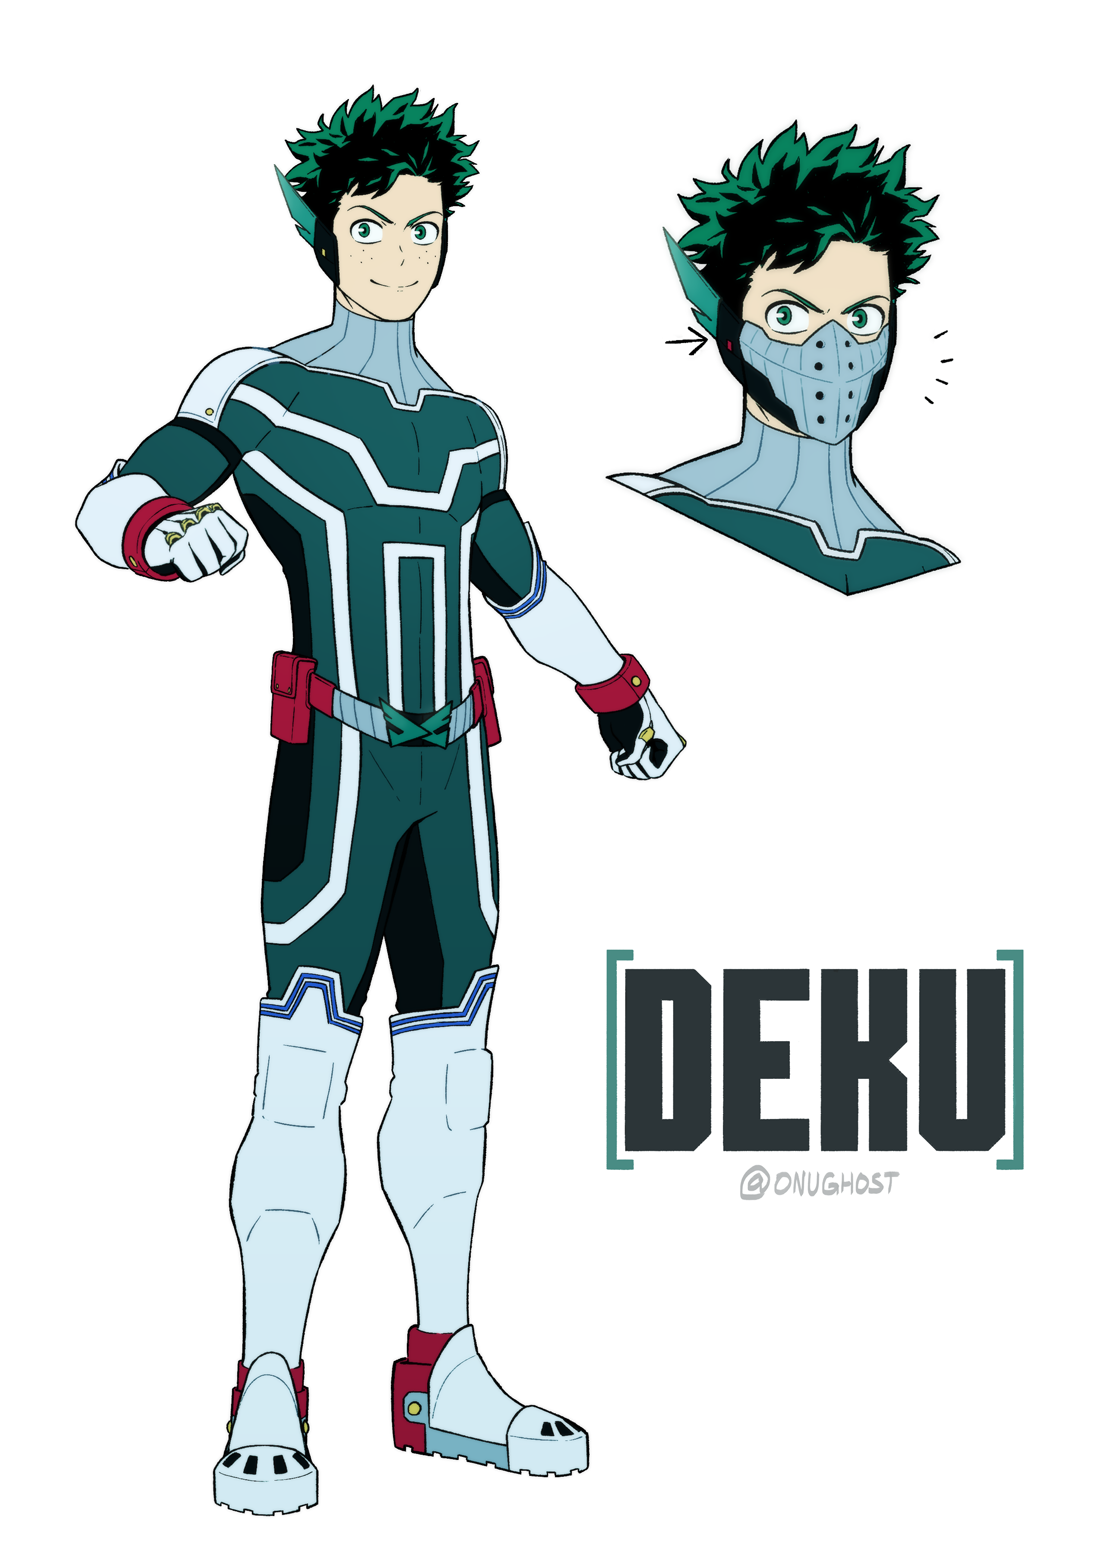 Pro Hero Deku Credit to onughost on Reddit My hero